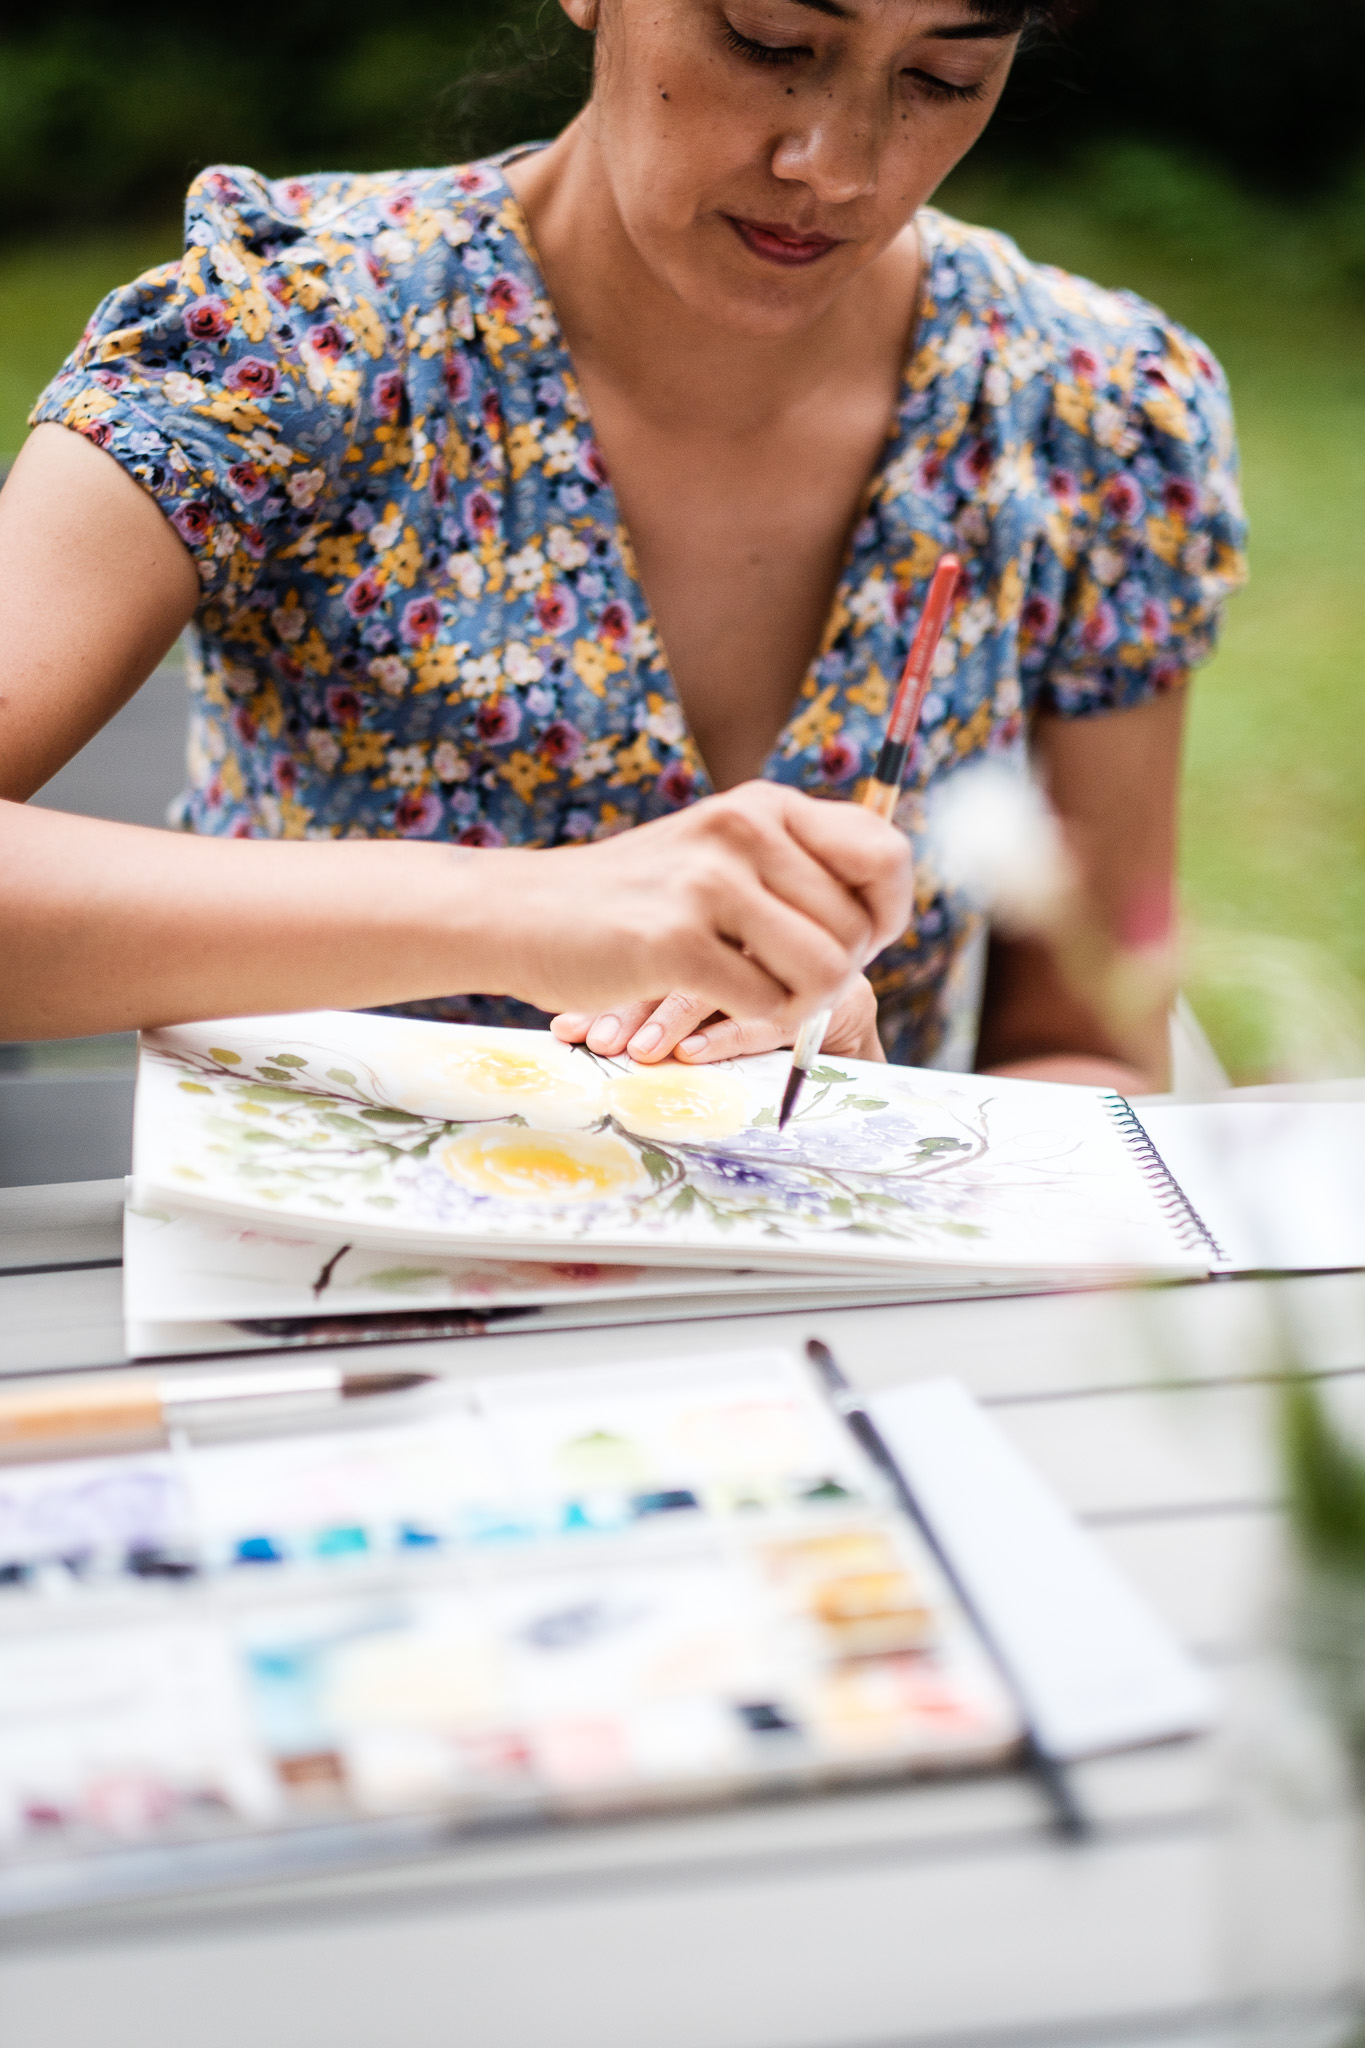 Female watercolor artist in Montreal, paints outdoors in her backyard as part of a personal branding photo session.